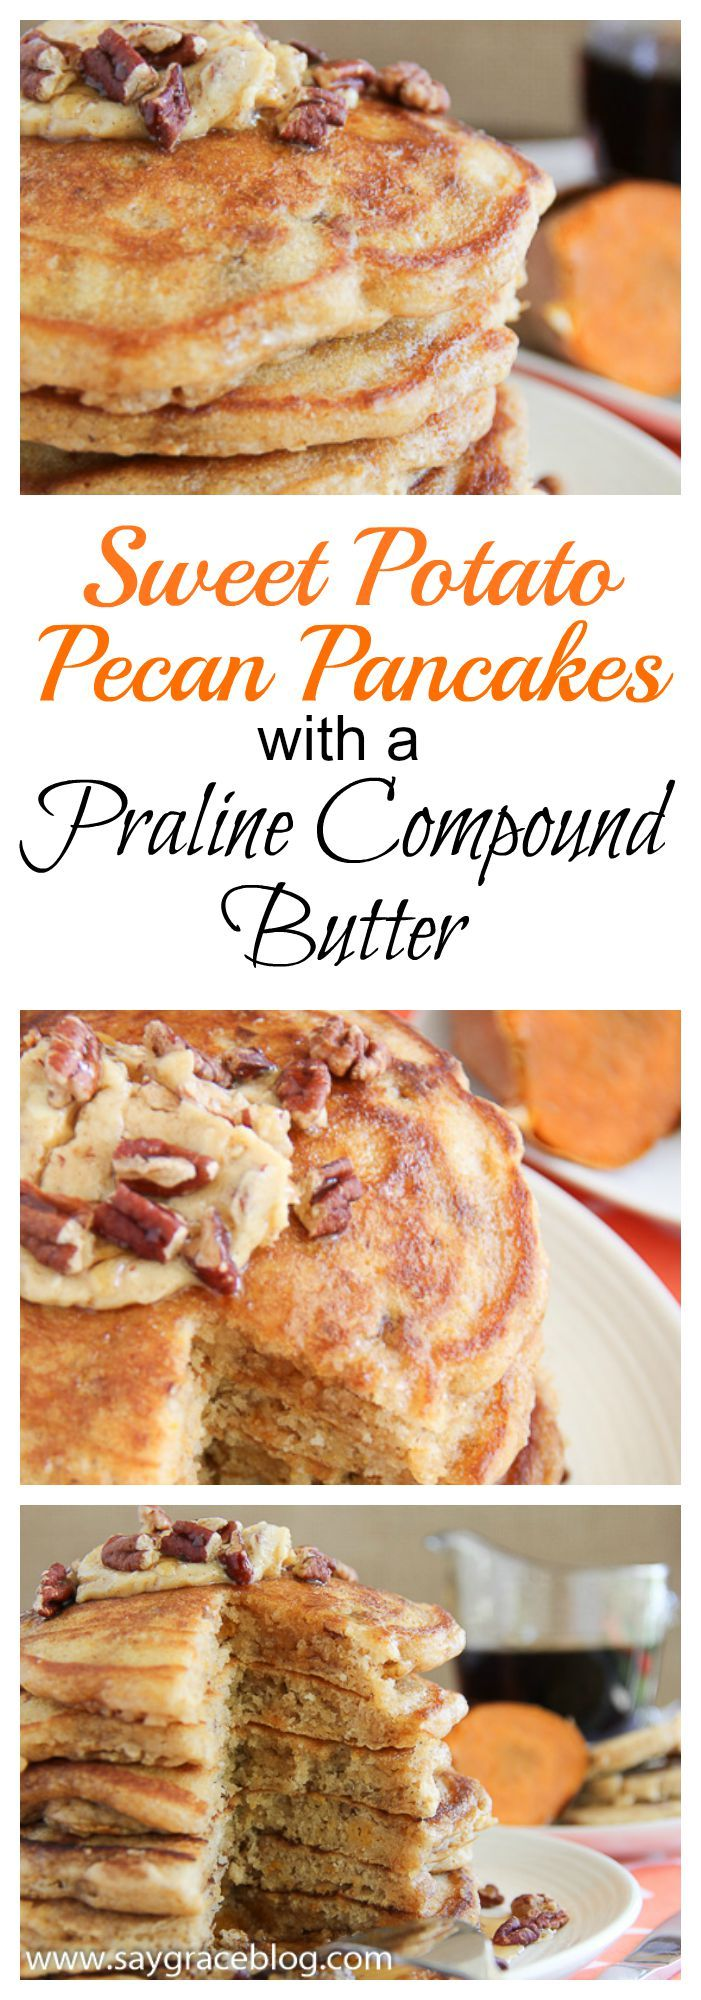 Light and fluffy sweet potato pancakes packed with toasted pecans and smeared with a delicious pecan praline compound butter.